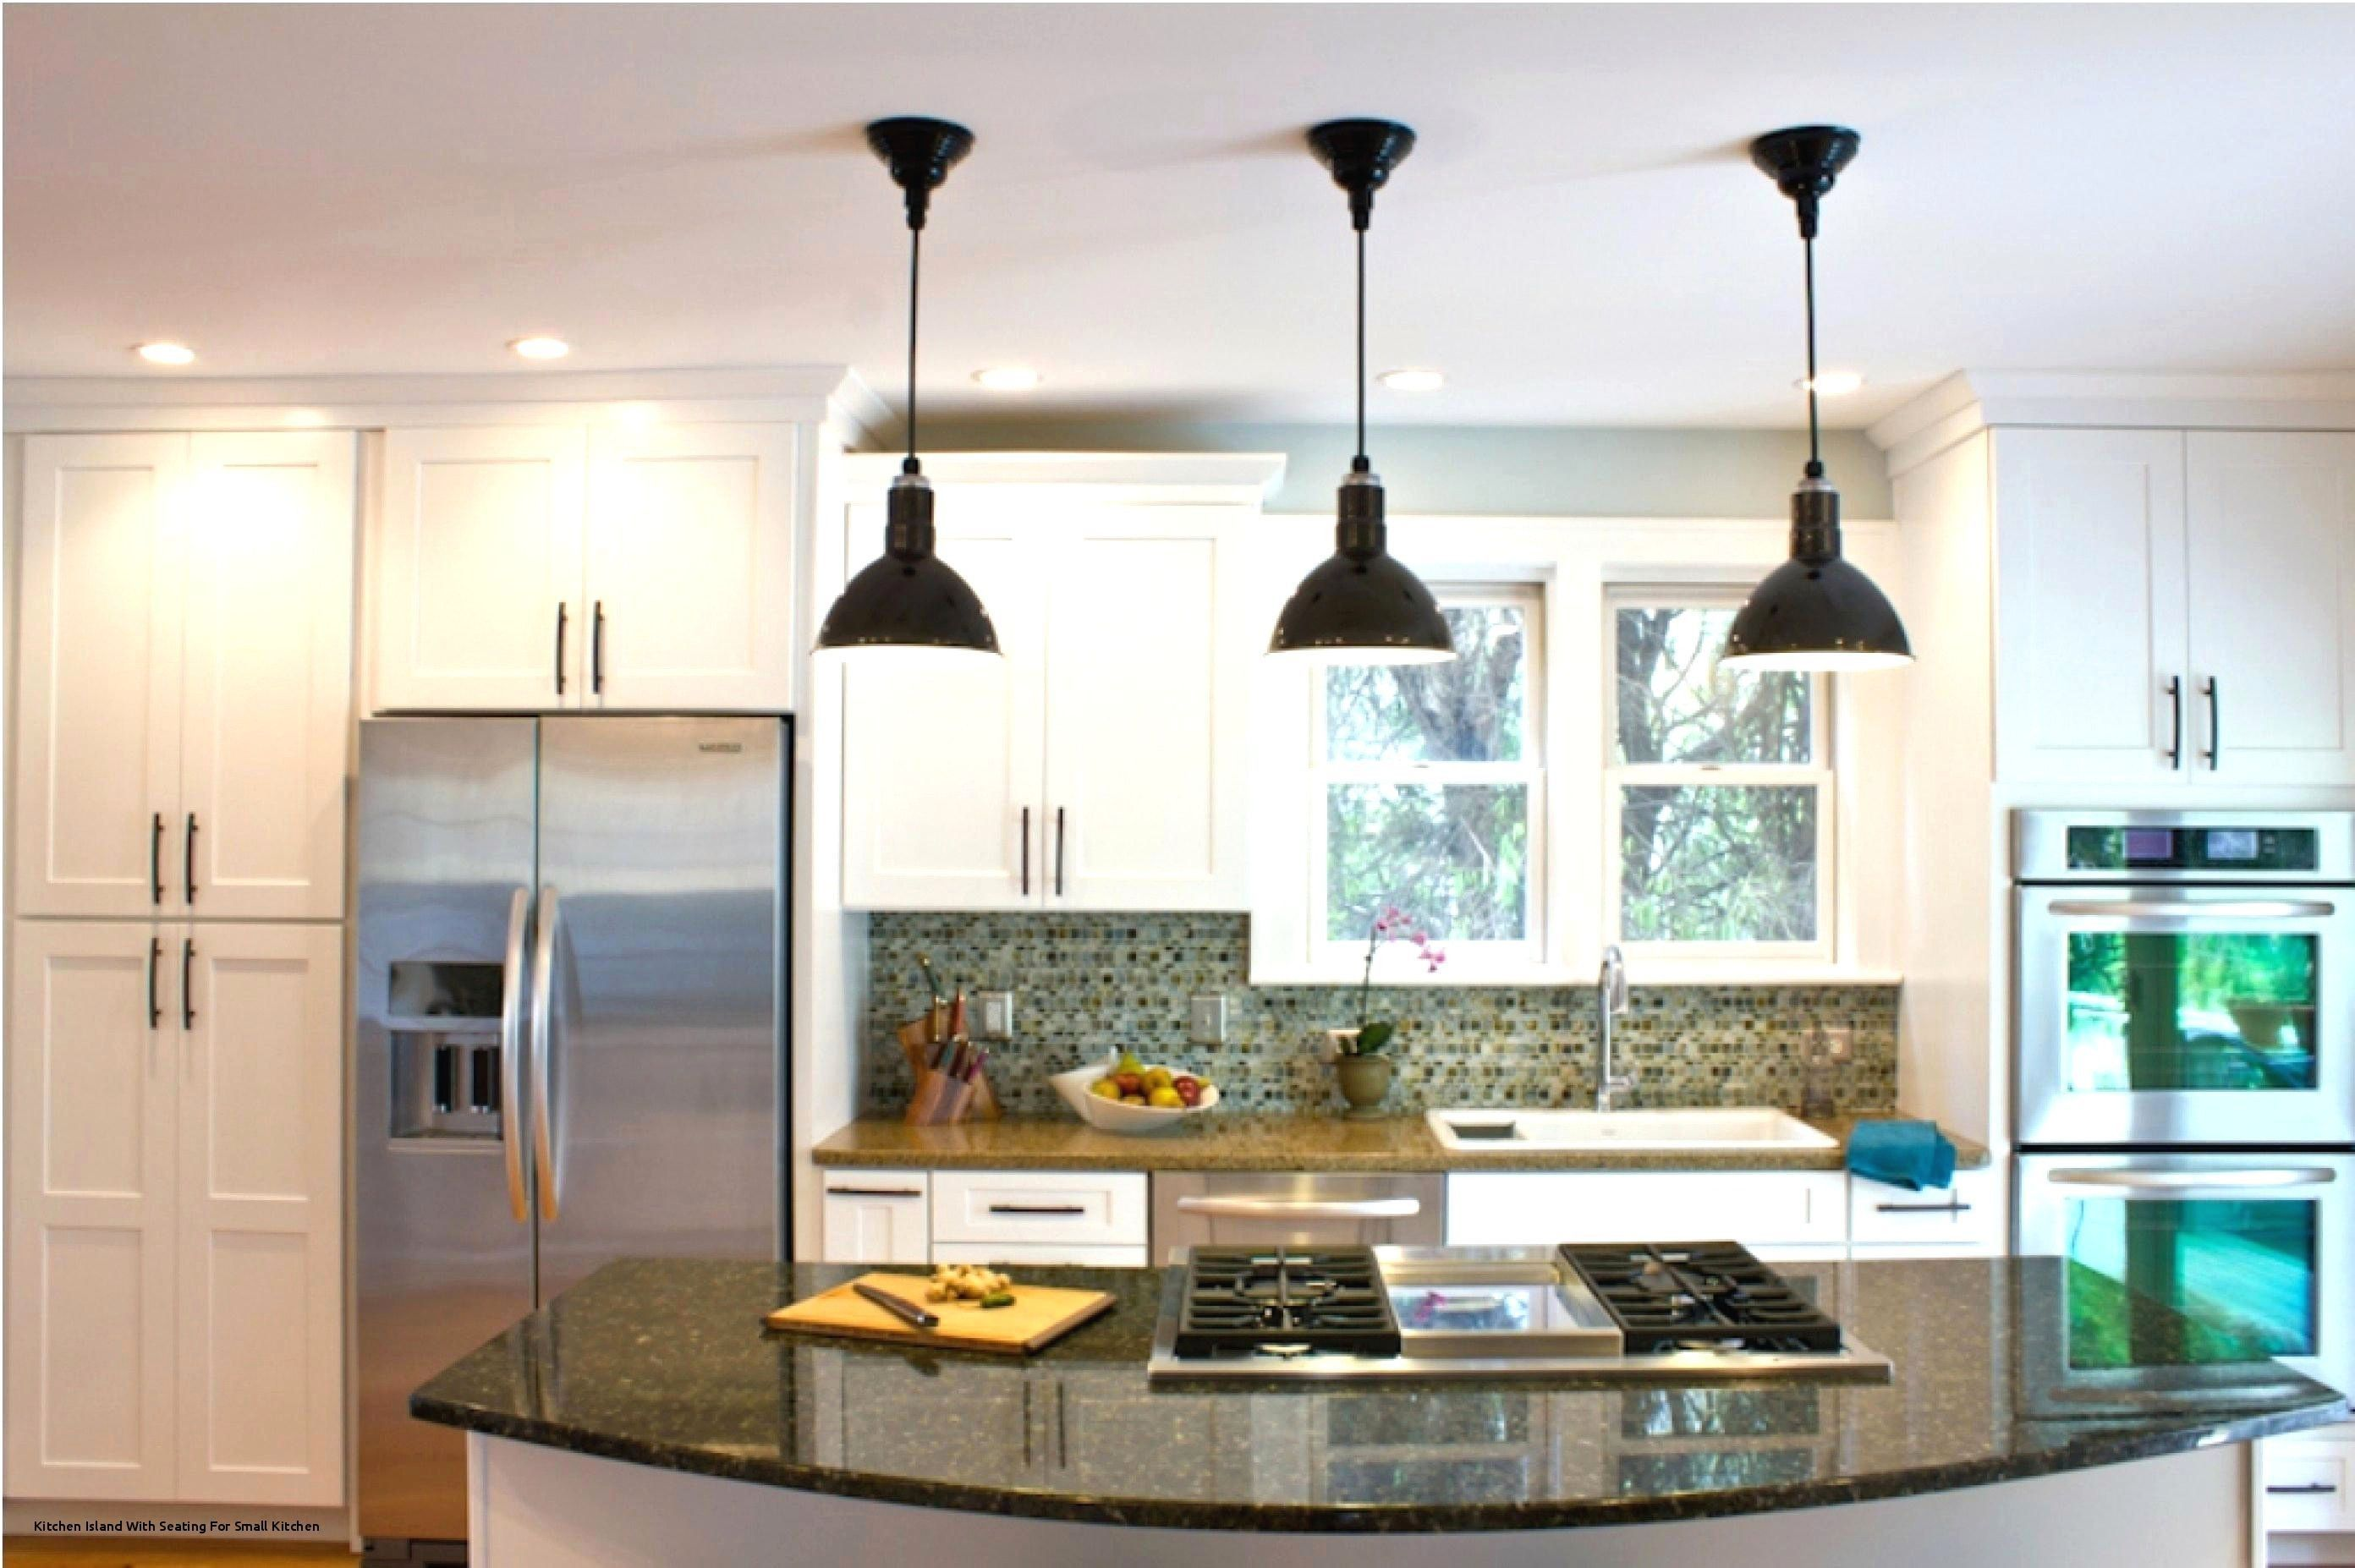 8 Awesome Small Kitchen Islands Design Small Kitchen Ideas With Island Unique 19 Luxury Kitchen Ceiling Lights Kitchen Lights Over Island Modern Kitchen Island